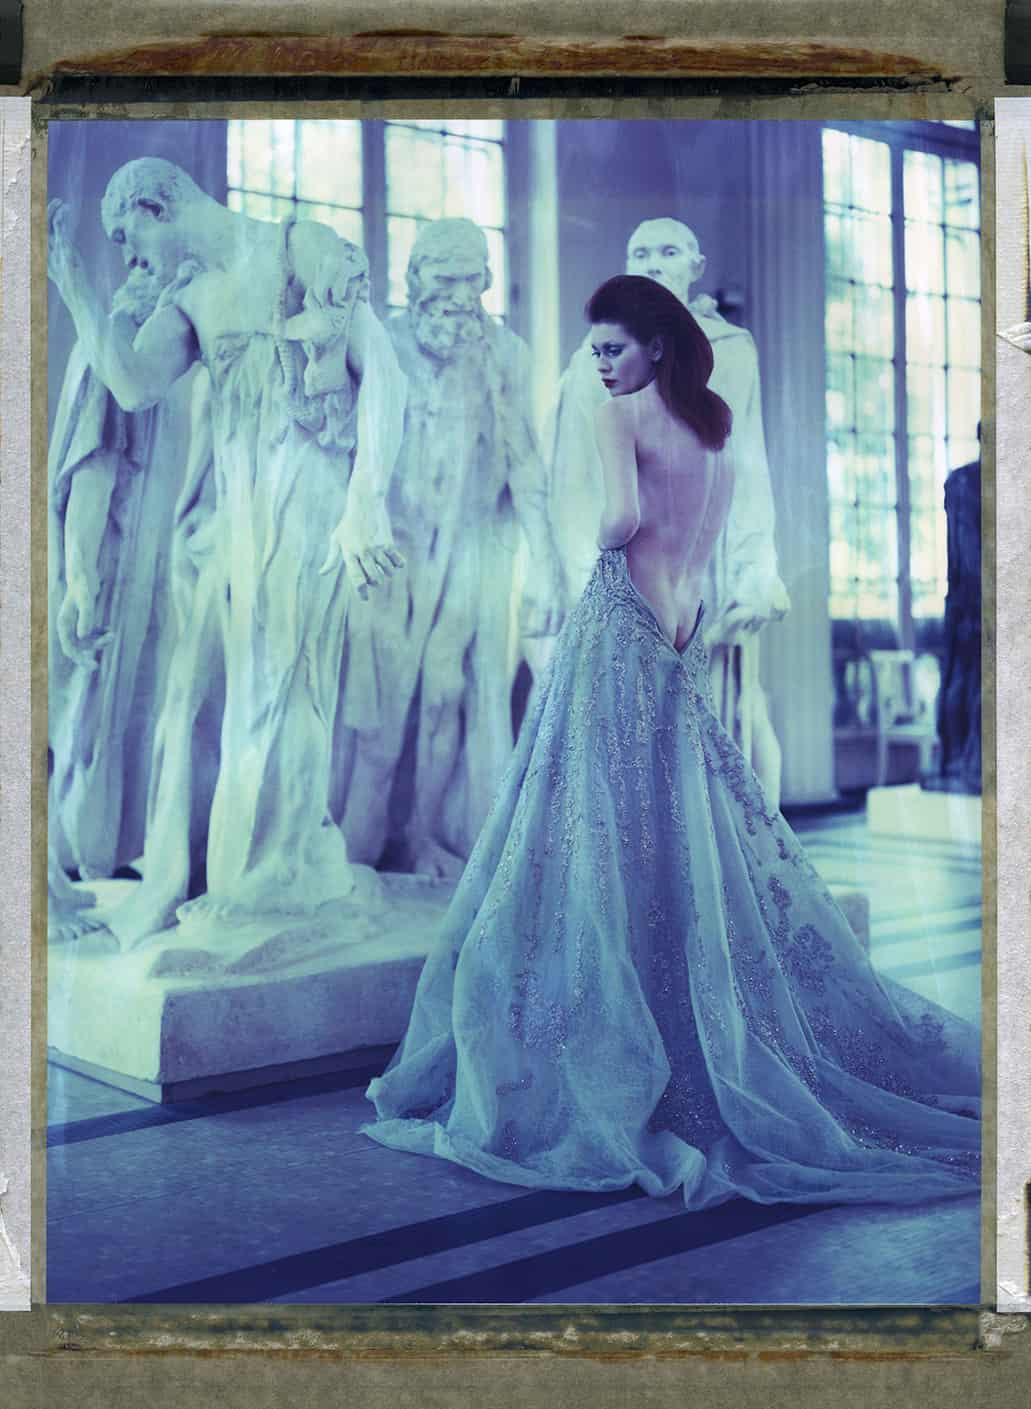 """Fine art color photography of semin-nude fashion model wearing Haute Couture by Elie Saab, photographed in front of August Rodin's sculpture """"Les Bourgeois de Calais"""" at the Musée Rodin Meudon, France"""